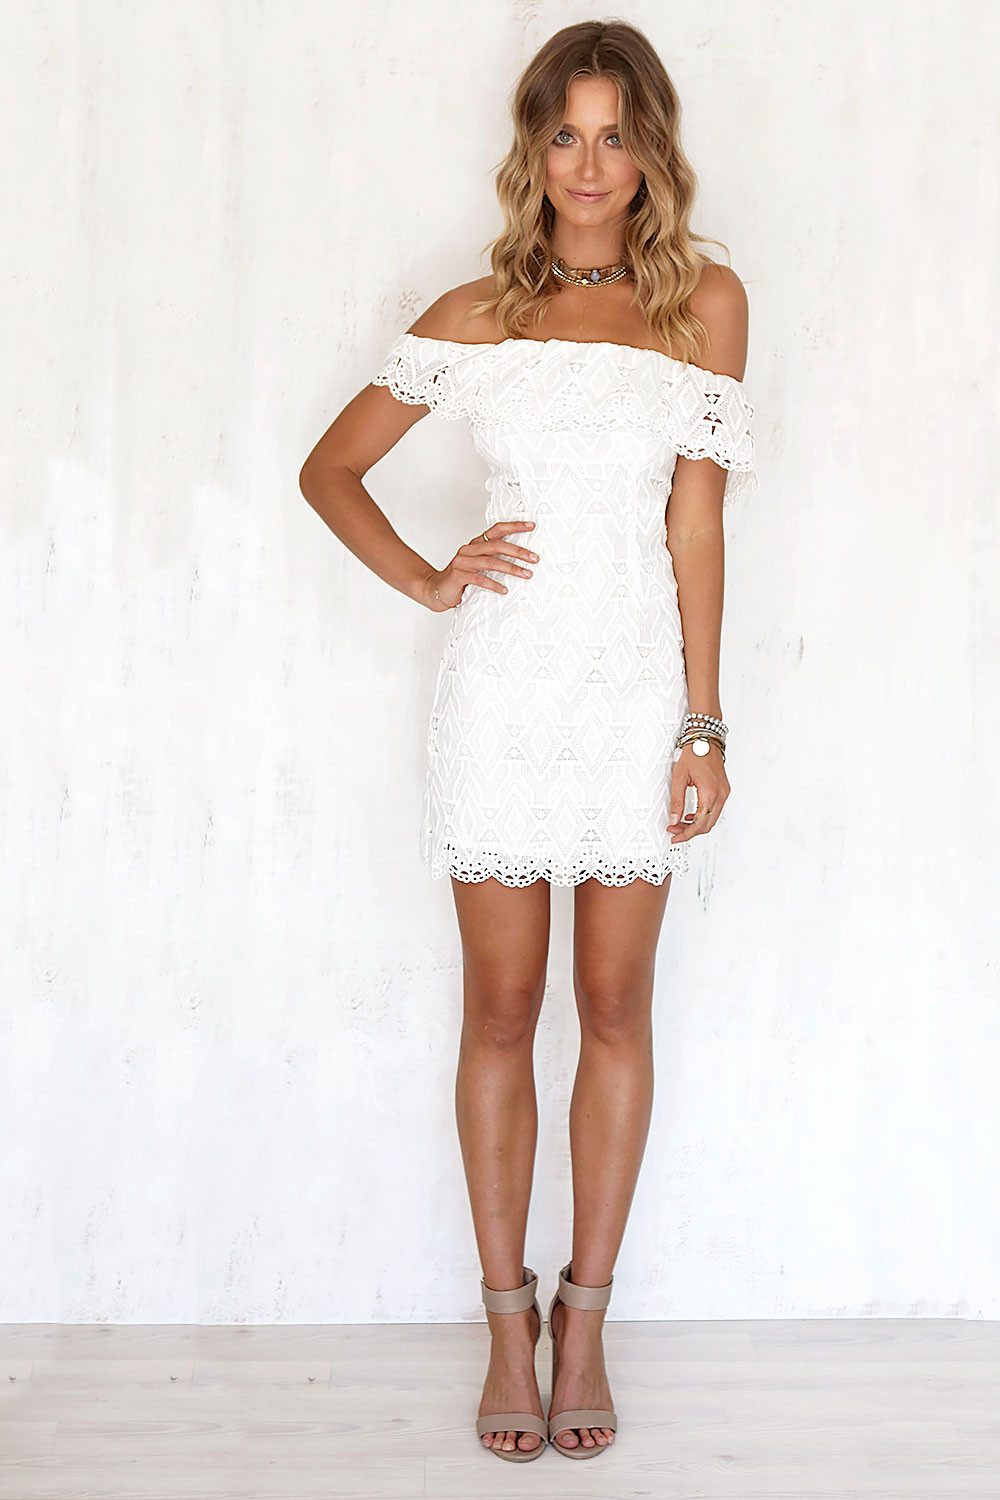 Sexy off the Shoulder White Lace Dress Women Casual vestido de festa feminino Monos Summer Style High Slit Party Boho Dresses 9